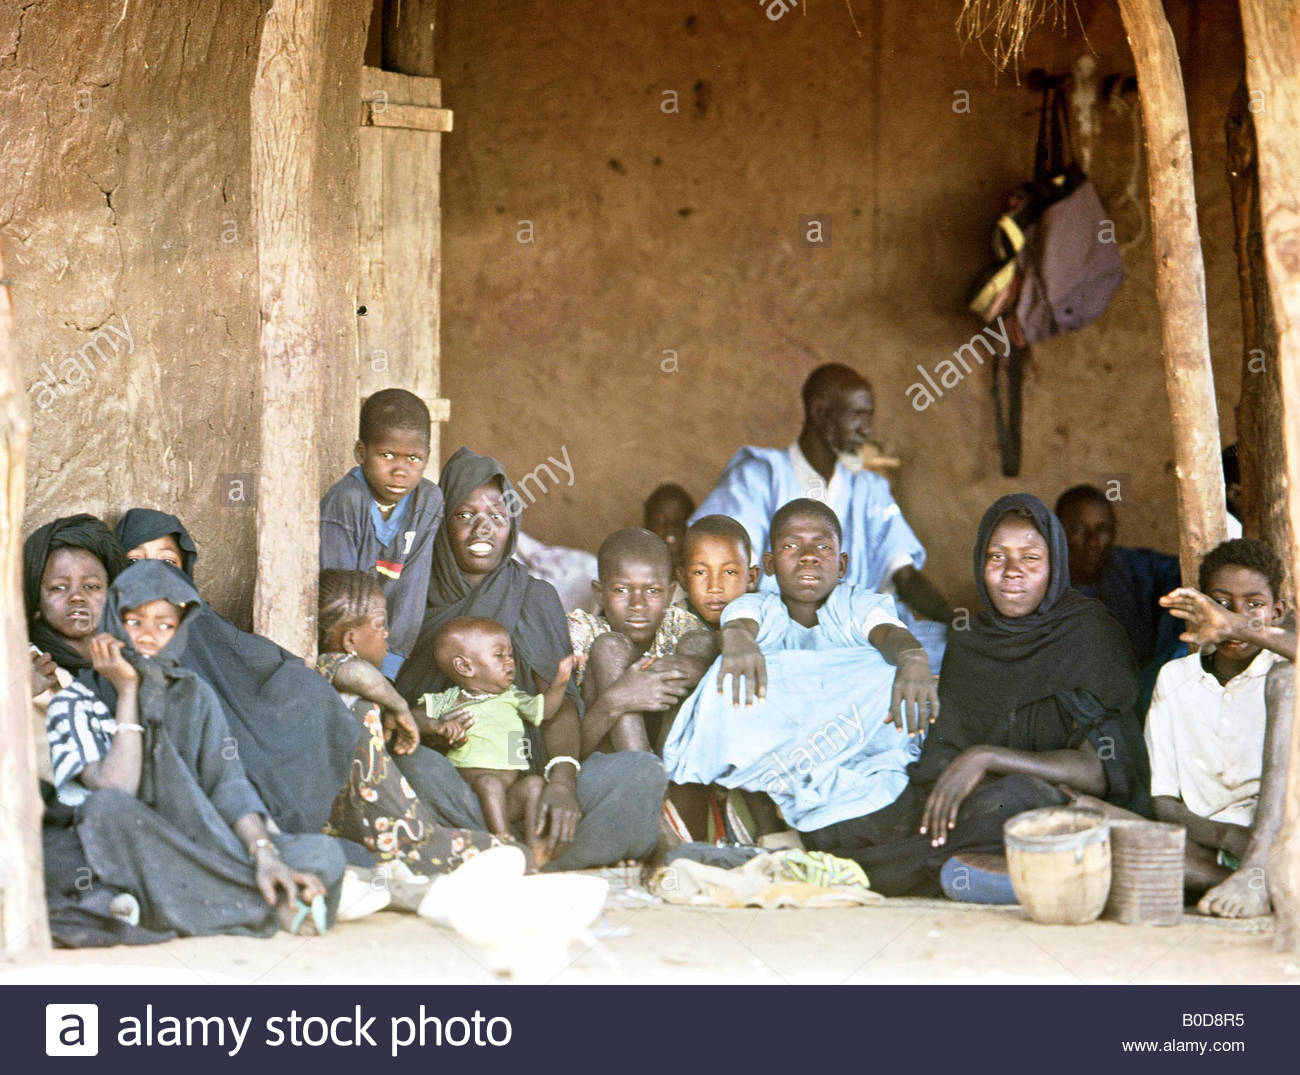 Mali Africa African Villagers Inside Their Hut Home Portrait Family Stock Photo Alamy